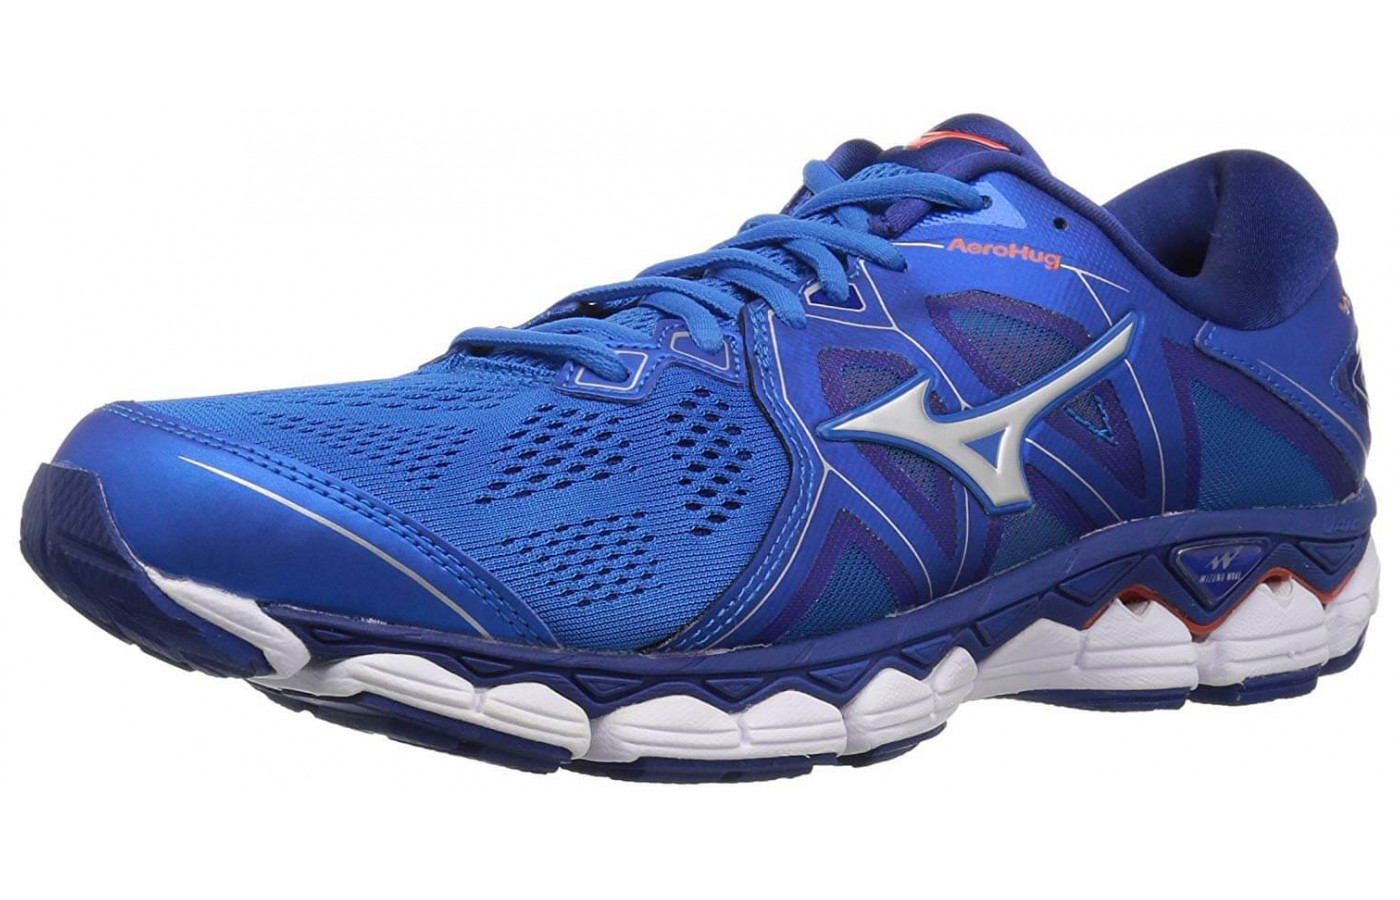 Mizuno Wave Sky 2 Reviewed - To Buy or Not in Mar 2019  7065167a9e